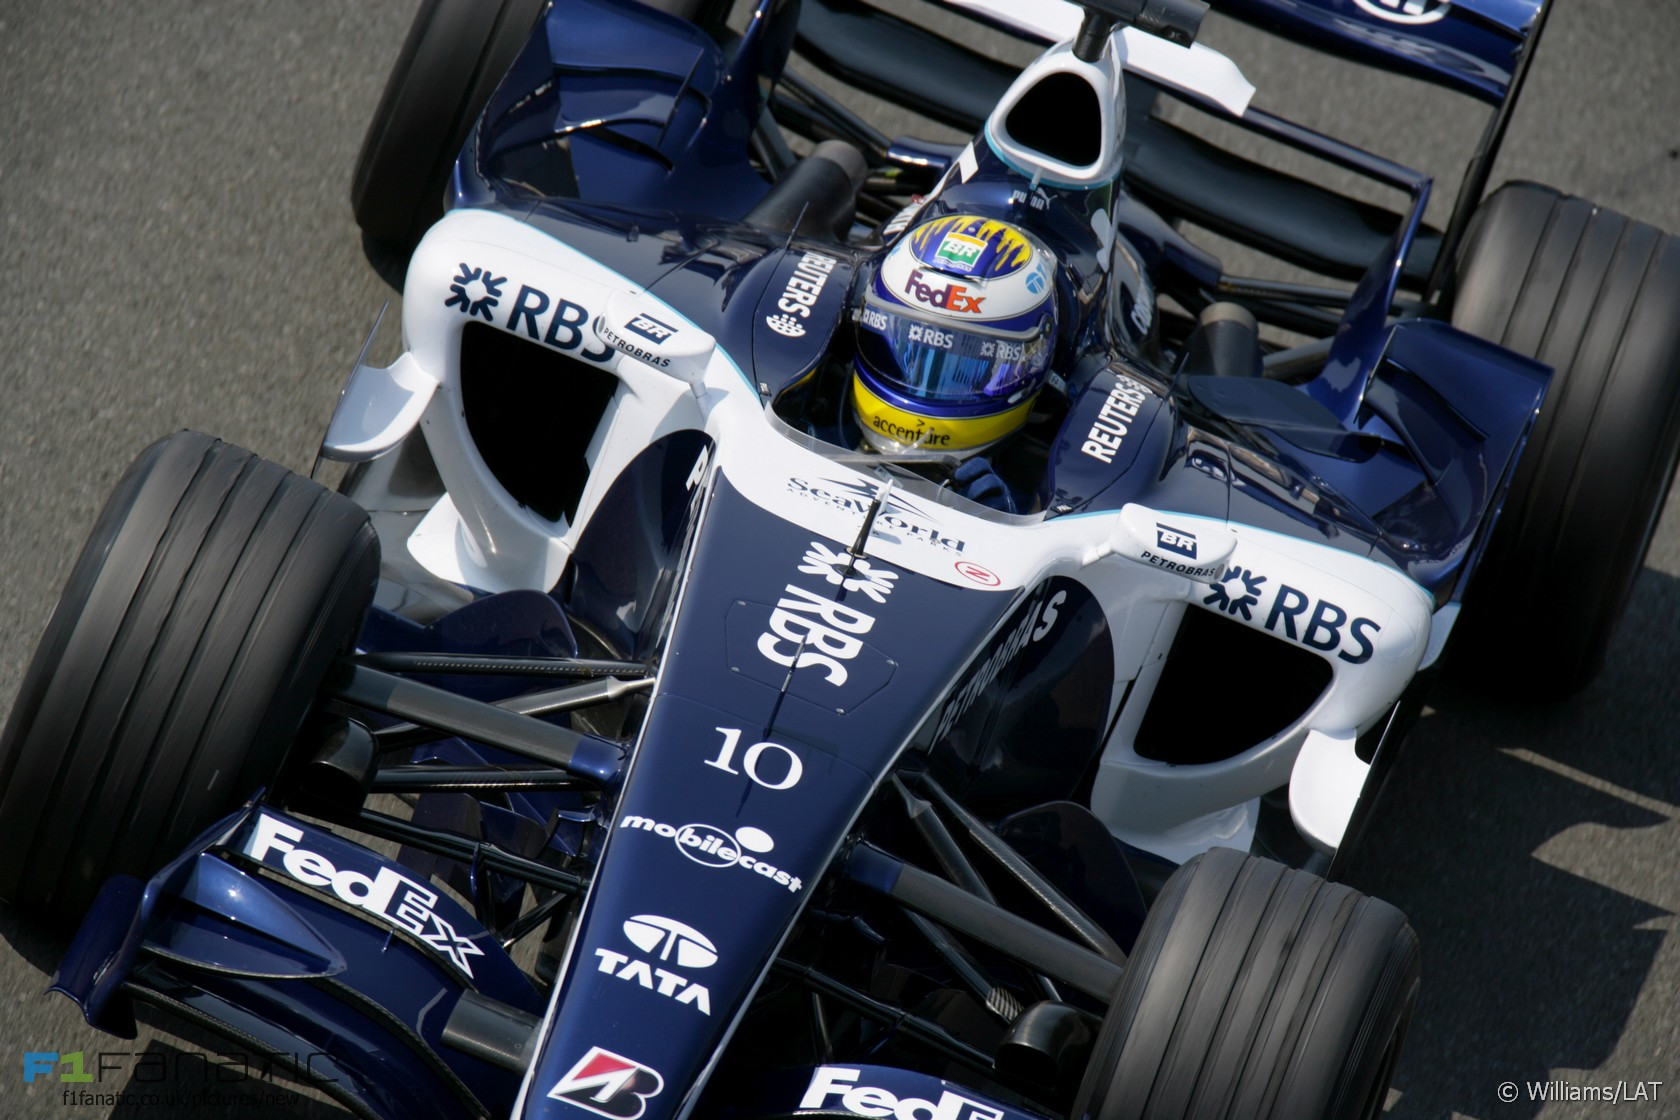 Nico Rosberg, Williams, Magny-Cours, 2006 · RaceFans